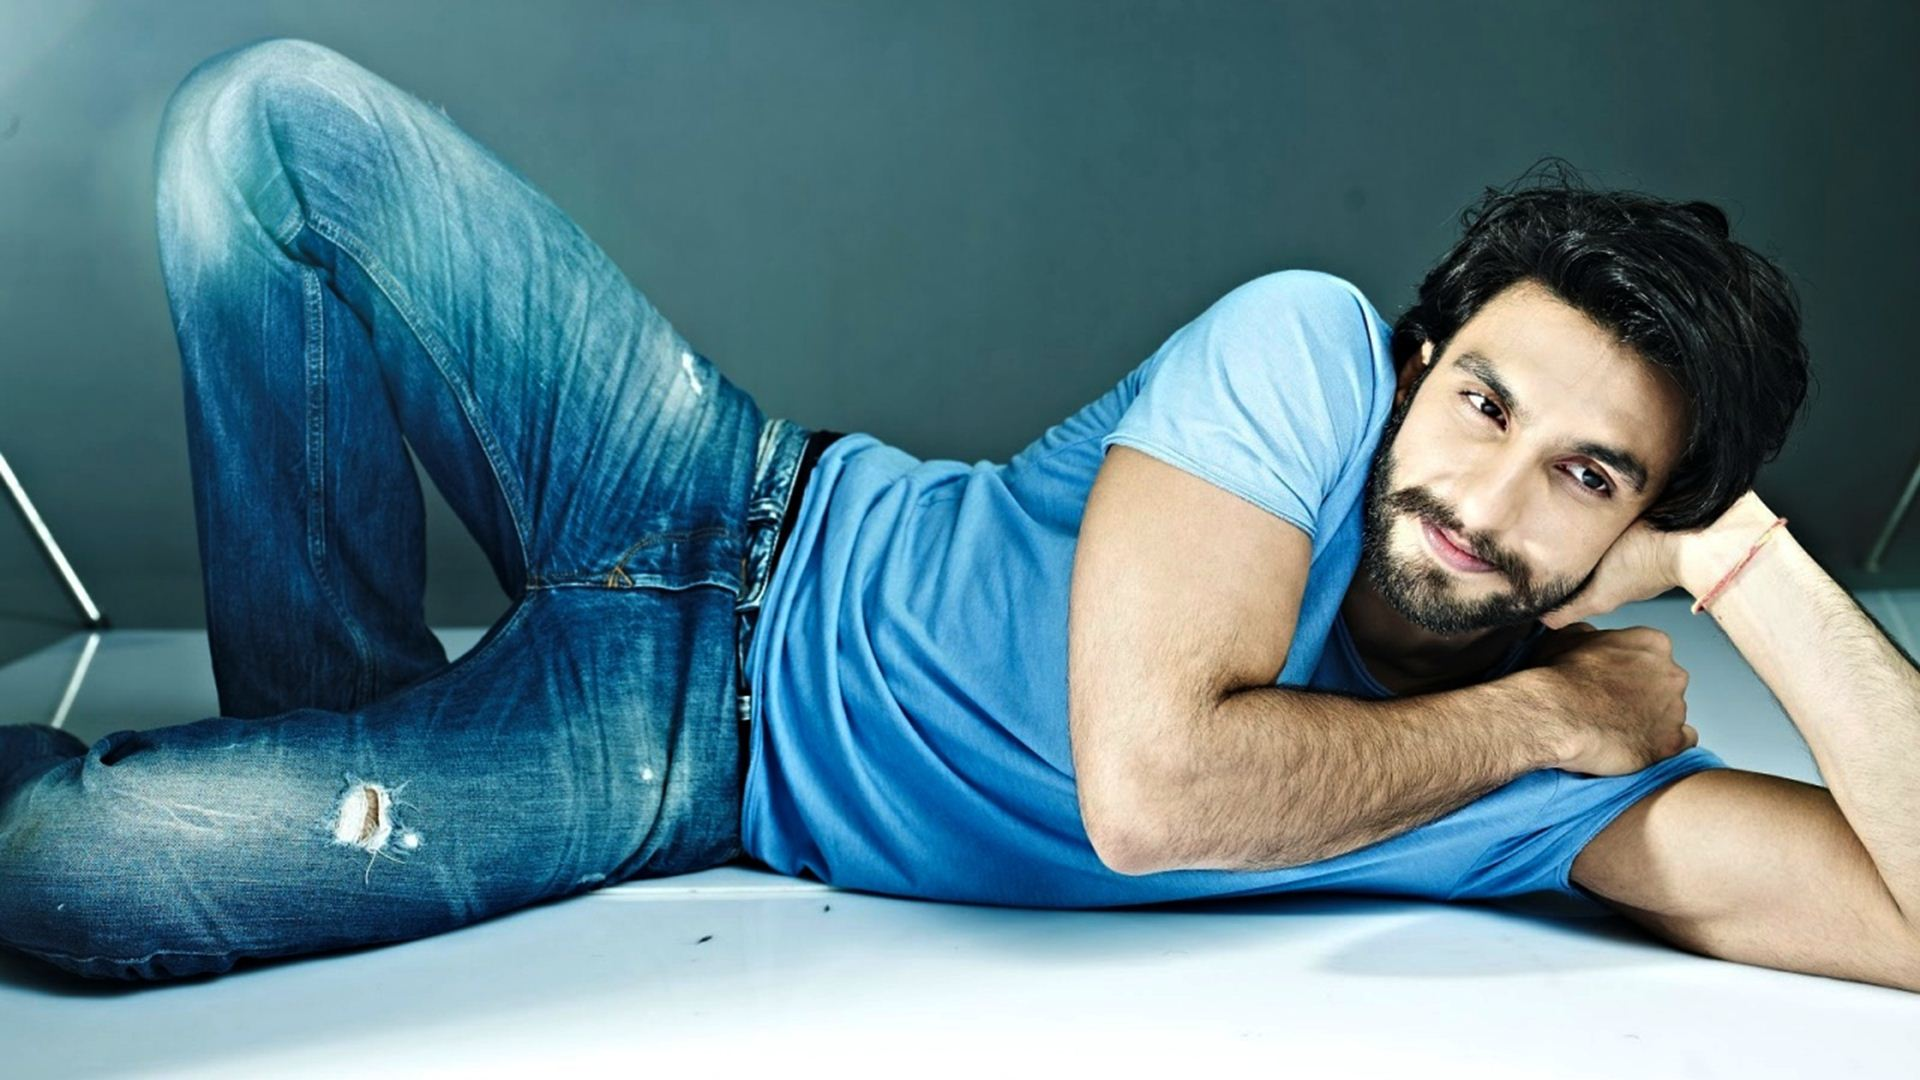 Download Ranveer Singh Images - Photo , Wallpapers 8